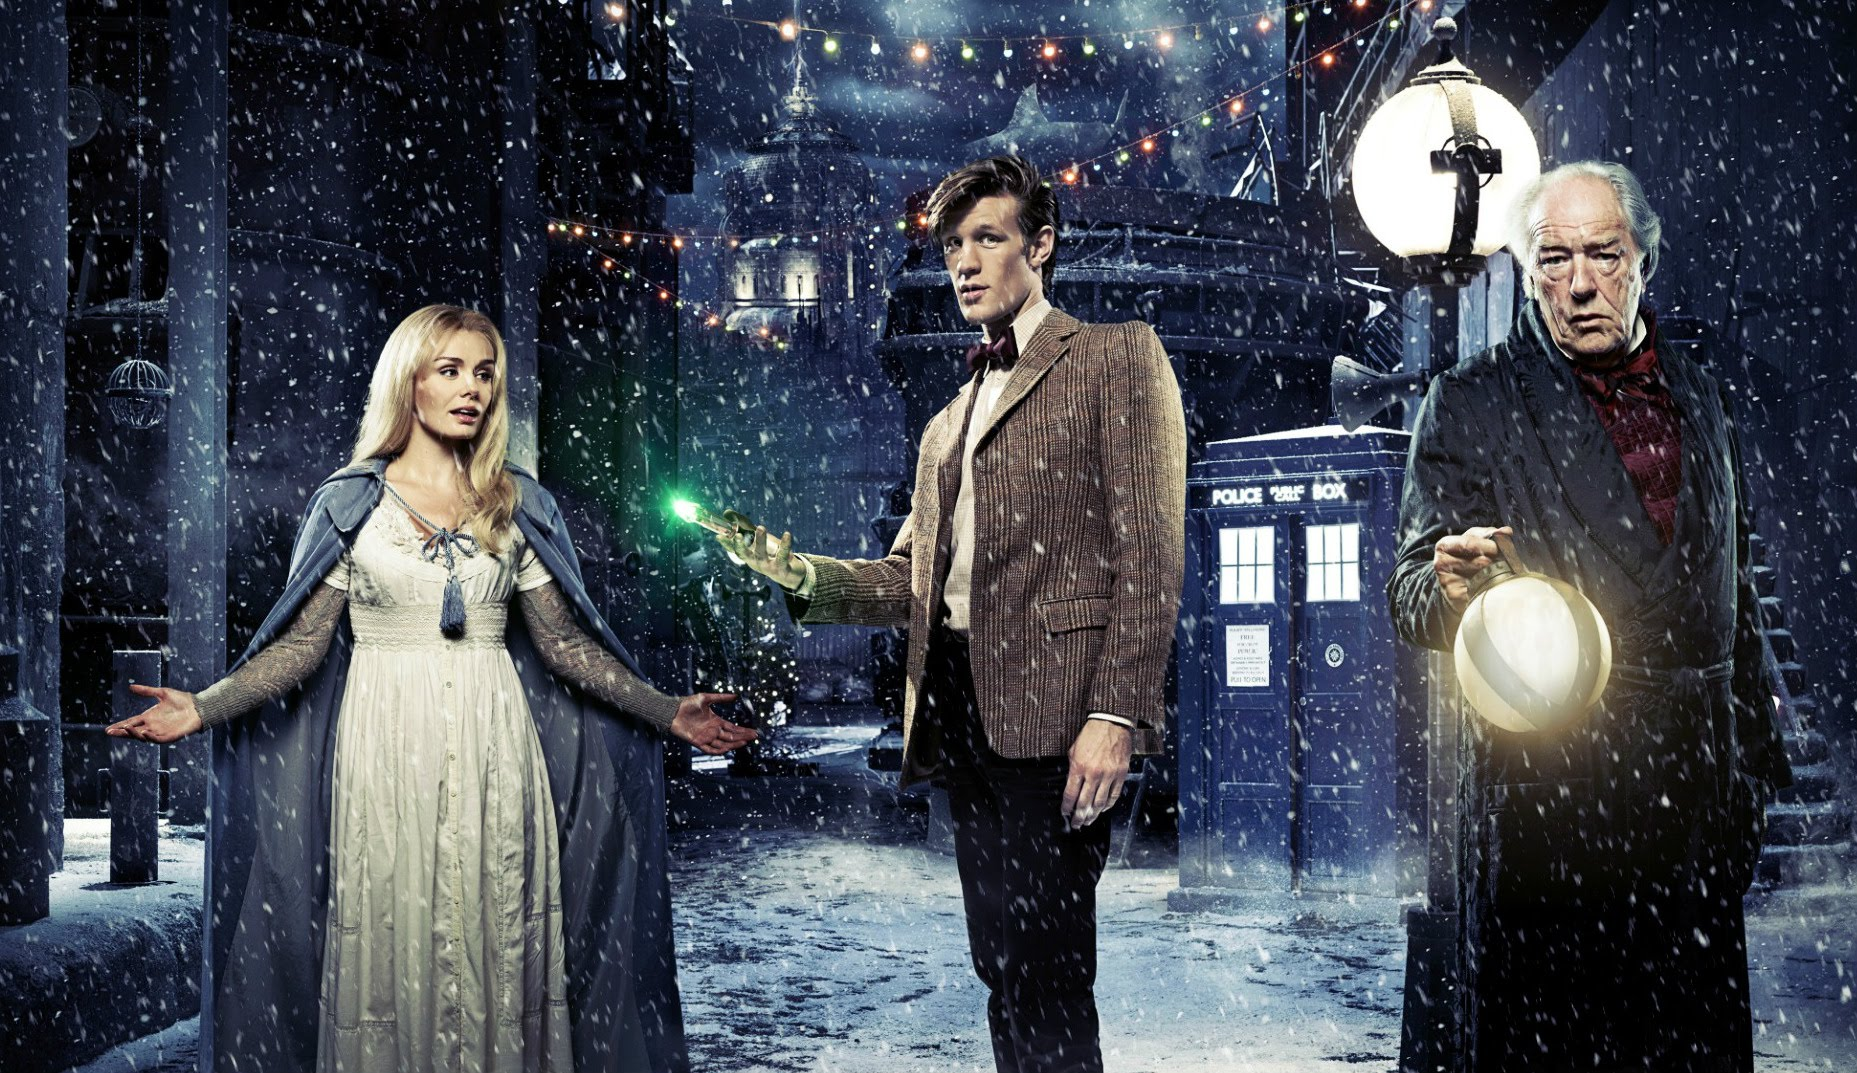 Doctor Who Christmas Special 2016.The Best Doctor Who Christmas Specials Part 2